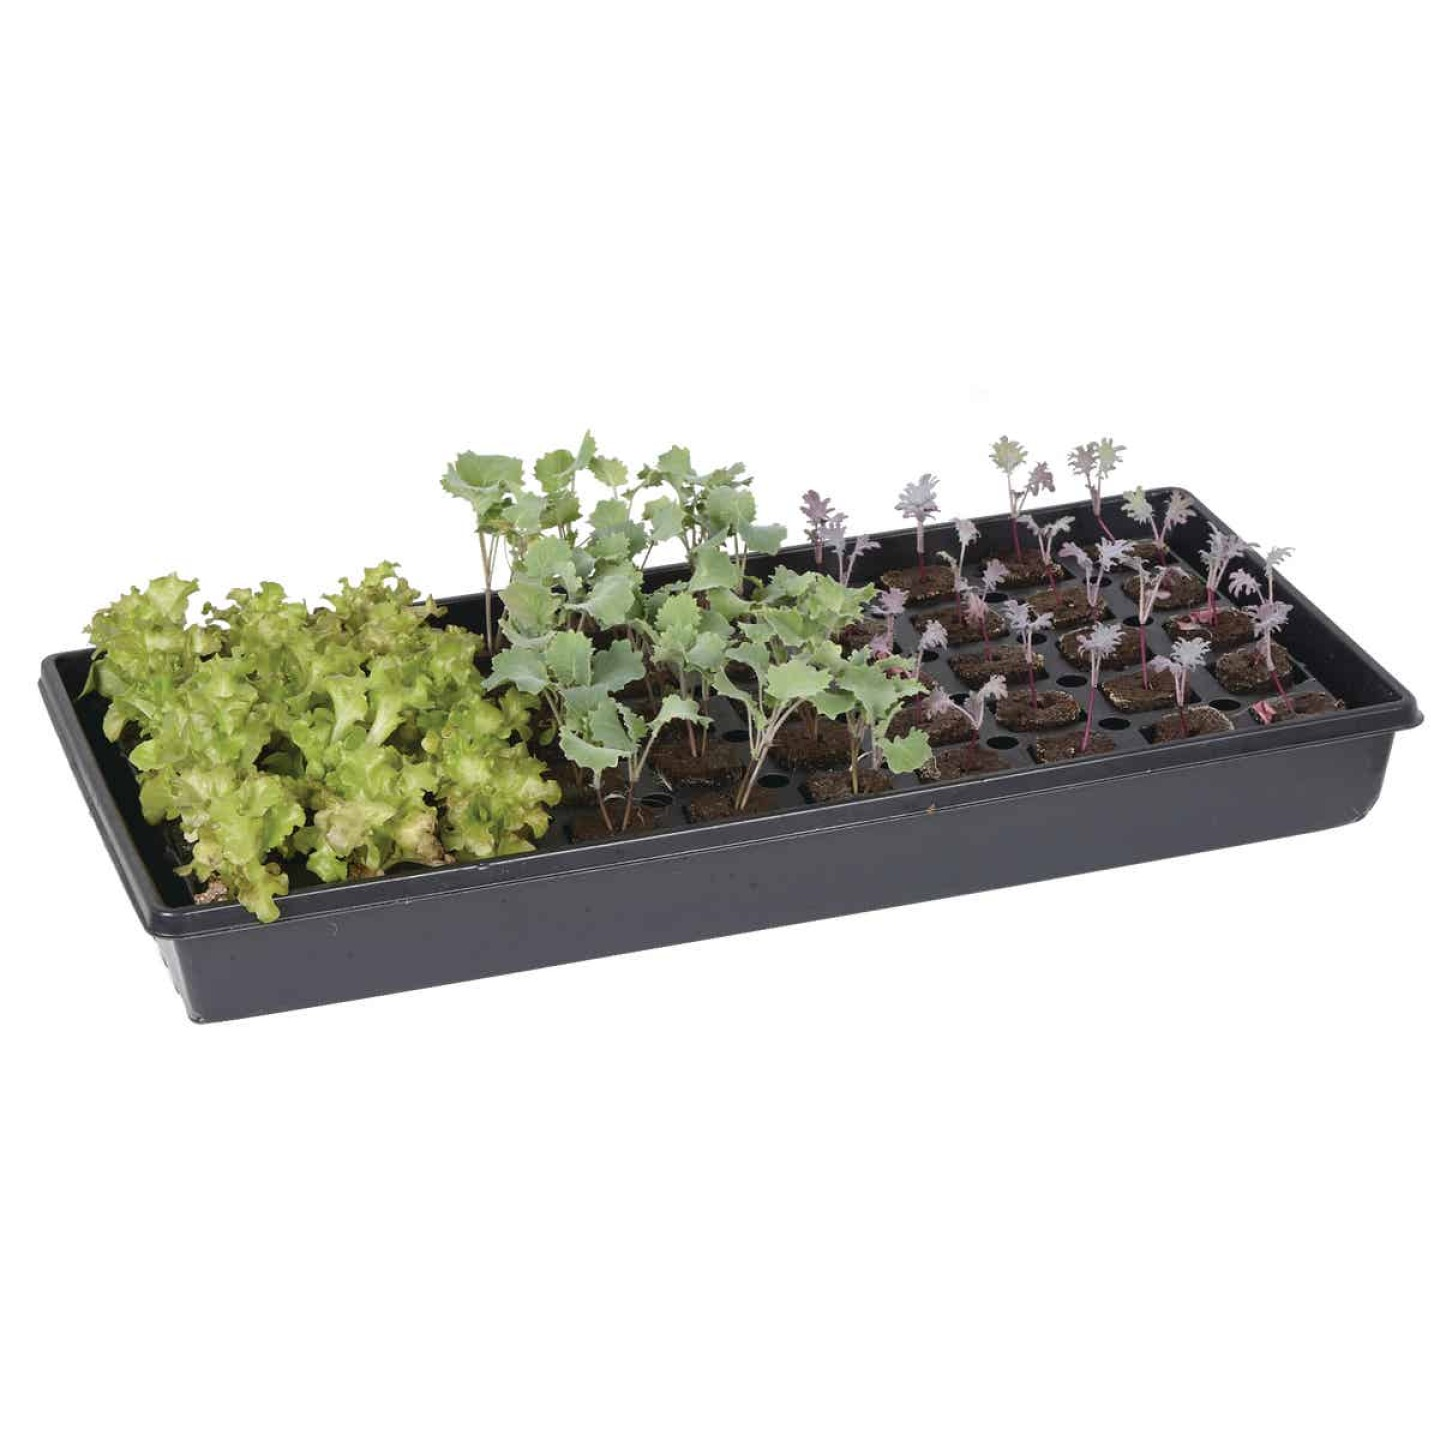 Root Farm 50-Cell Hydroponic Starter Kit Image 2